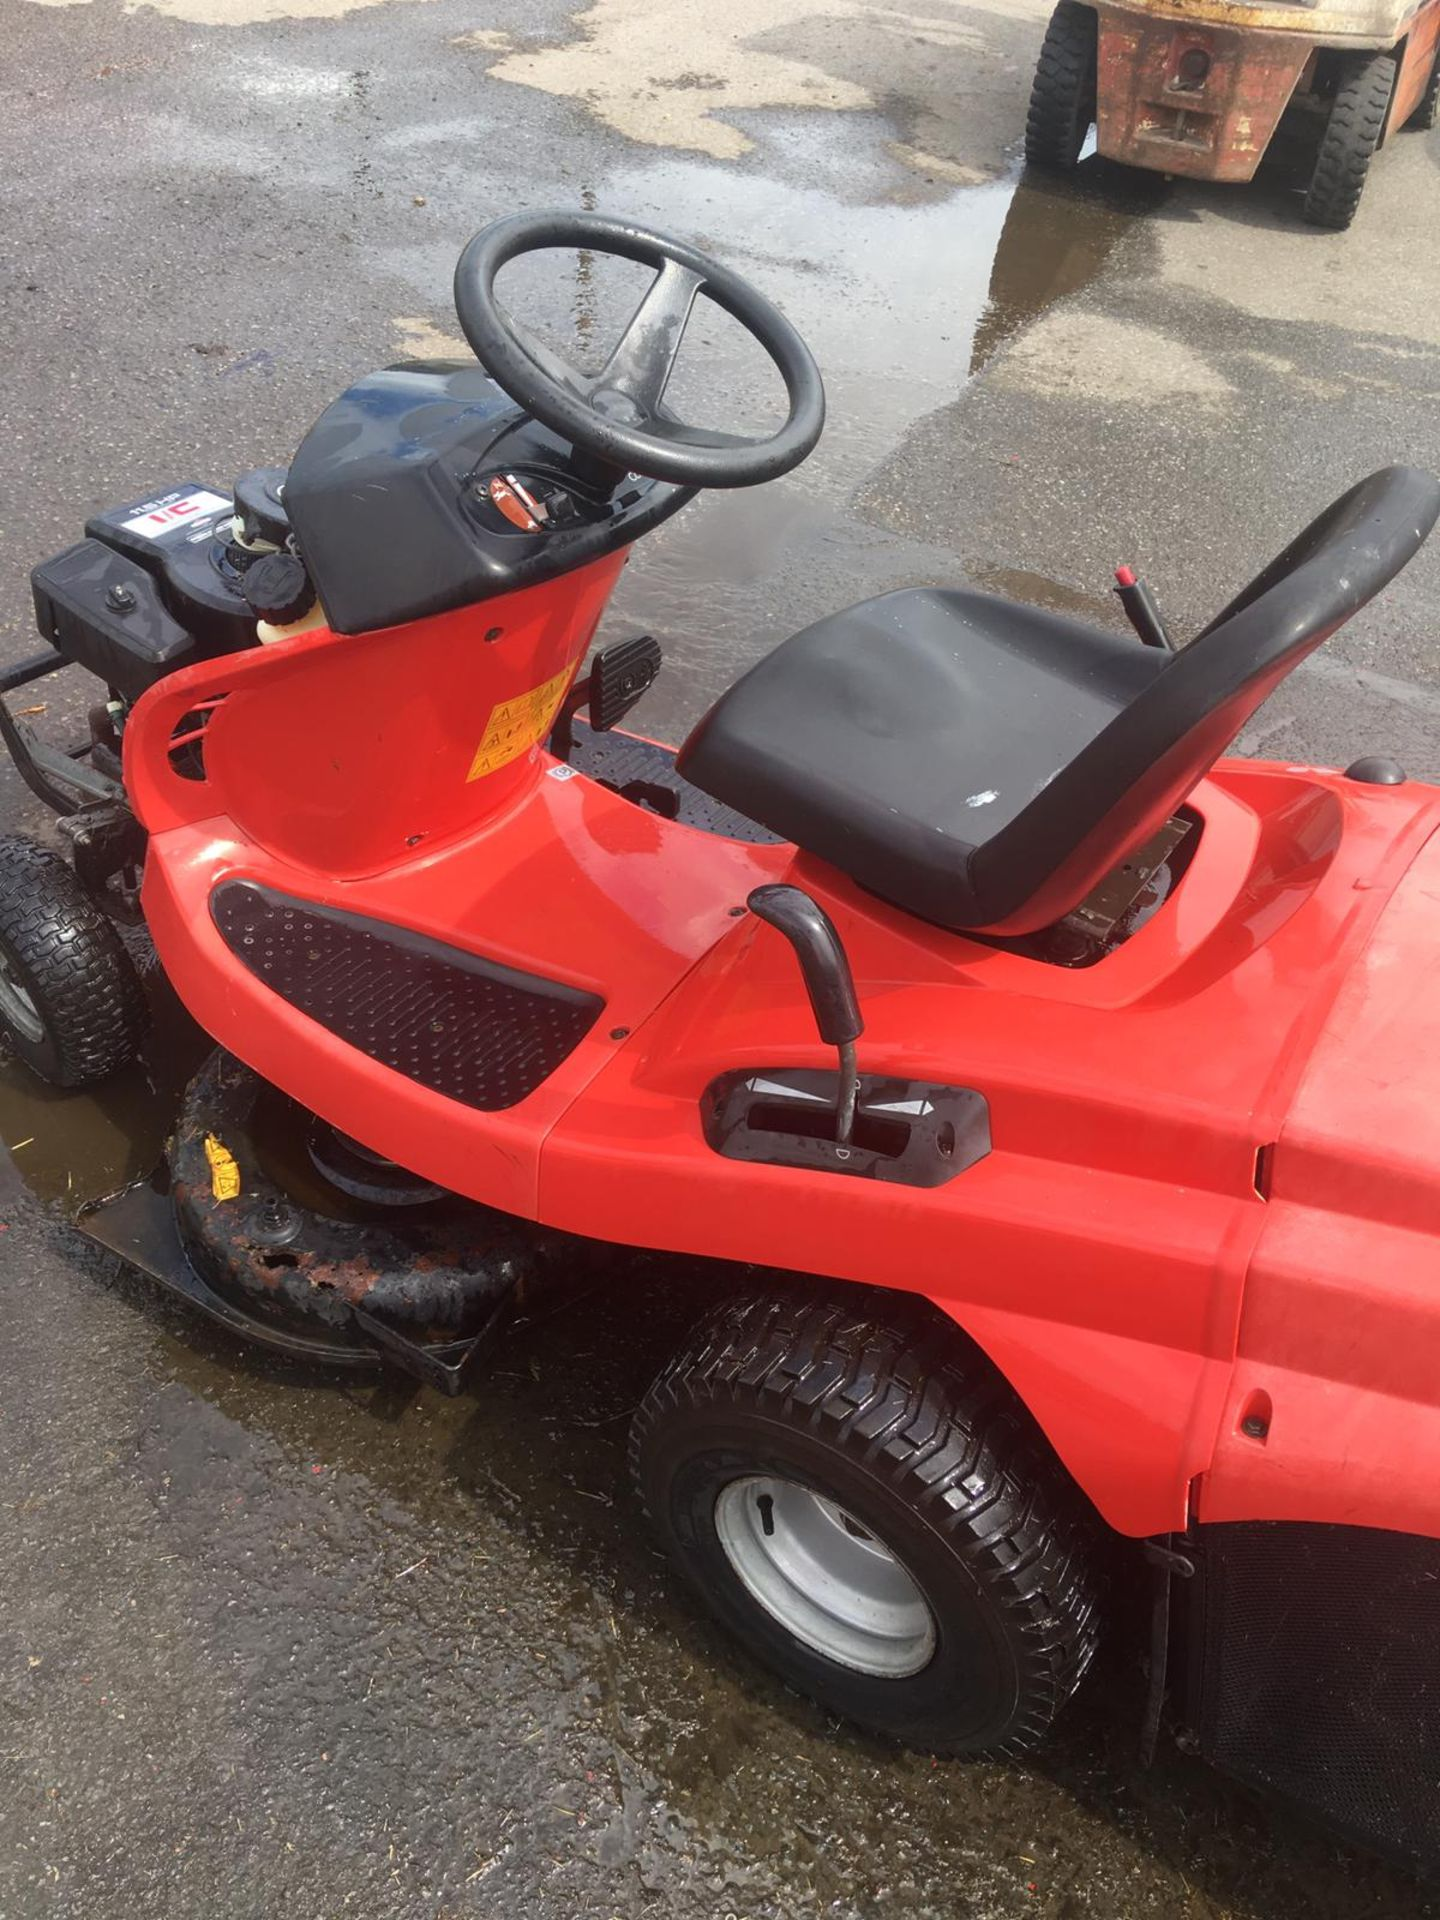 Lot 44 - AL-KO T15-102 HD RIDE ON LAWN MOWER, 225 KG, YEAR 2002, C/W REAR GRASS COLLECTOR, 11.5HP I/C ENGINE